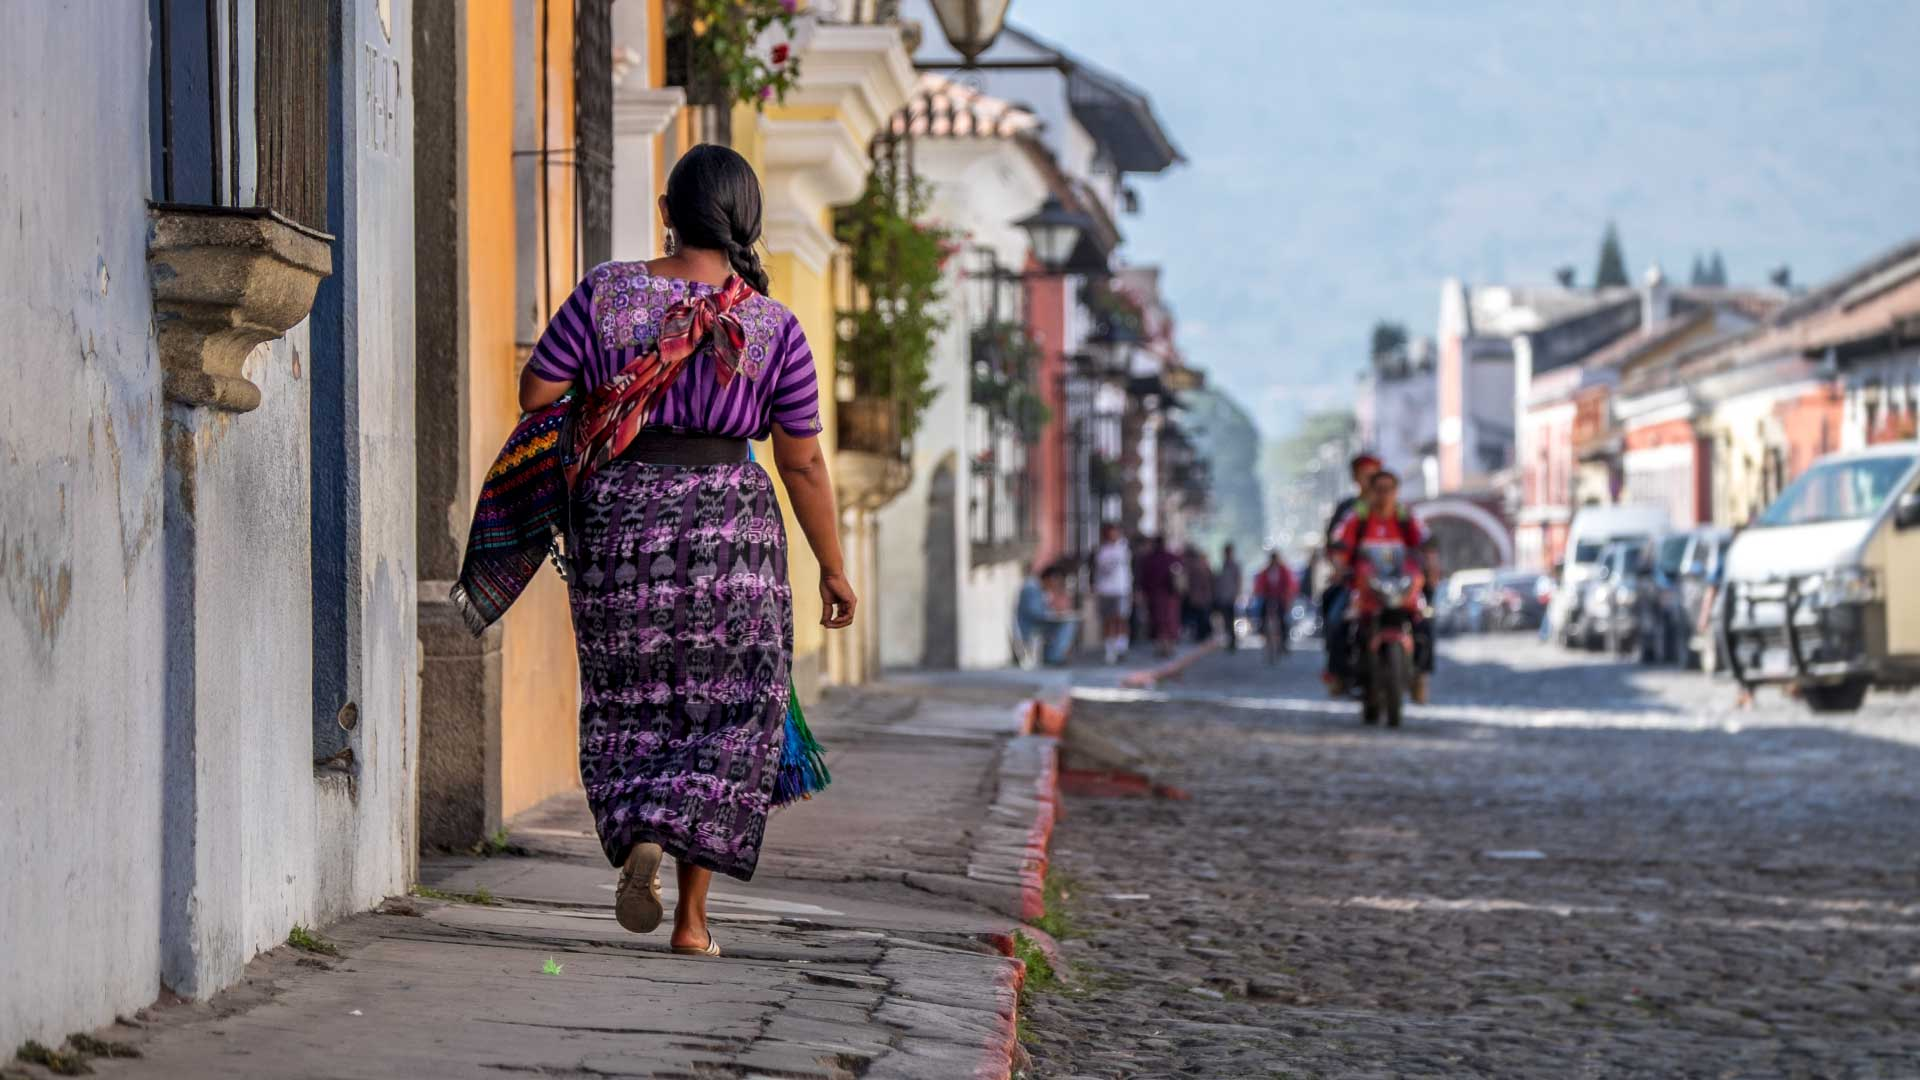 Guatemalan Woman in traditional dress, Antigua, Guatemala